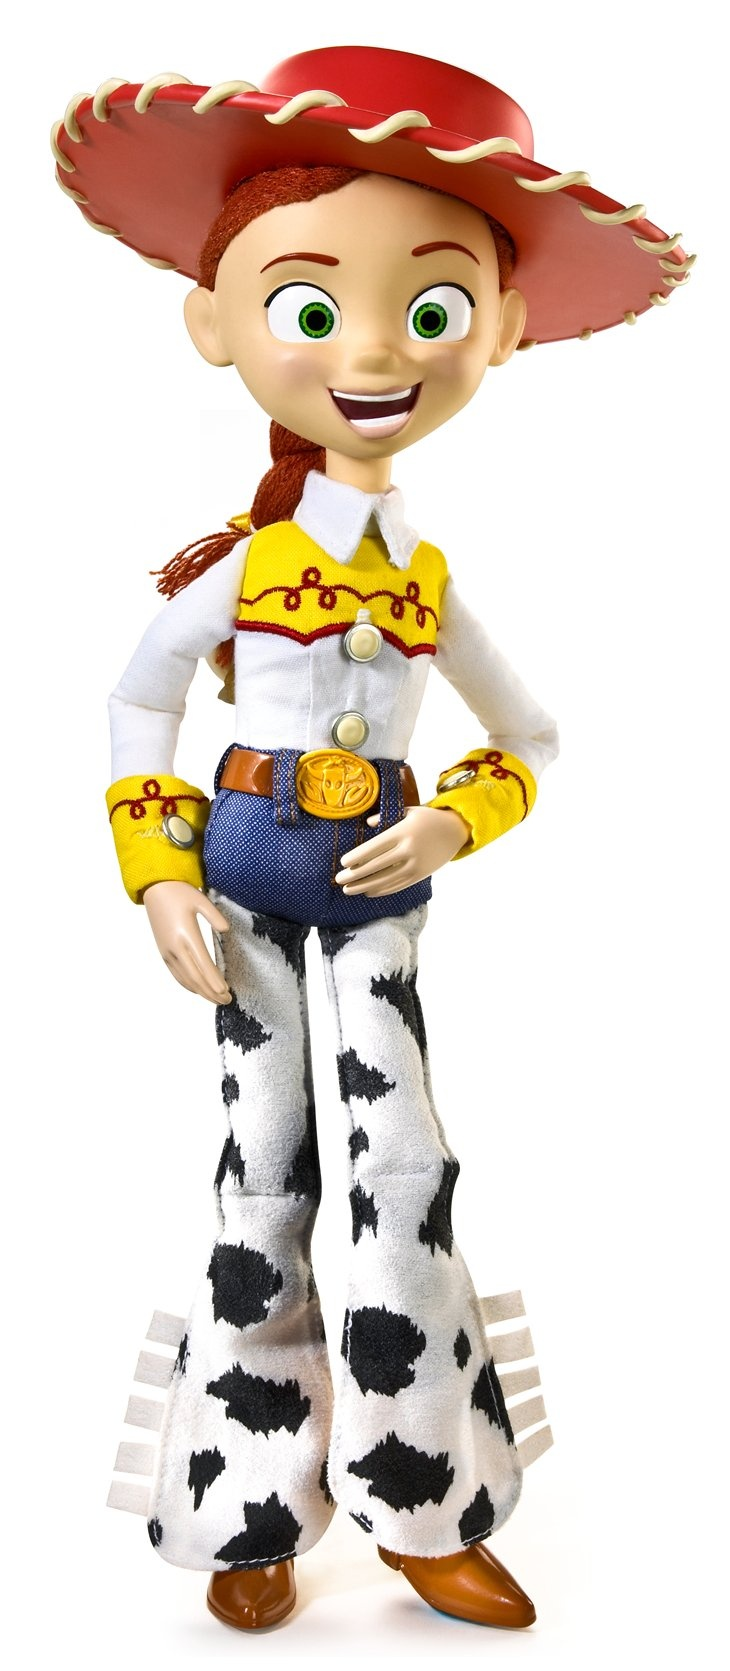 Toy Story Cracked Magazine: 1000+ Ideas About Toy Story Costumes On Pinterest